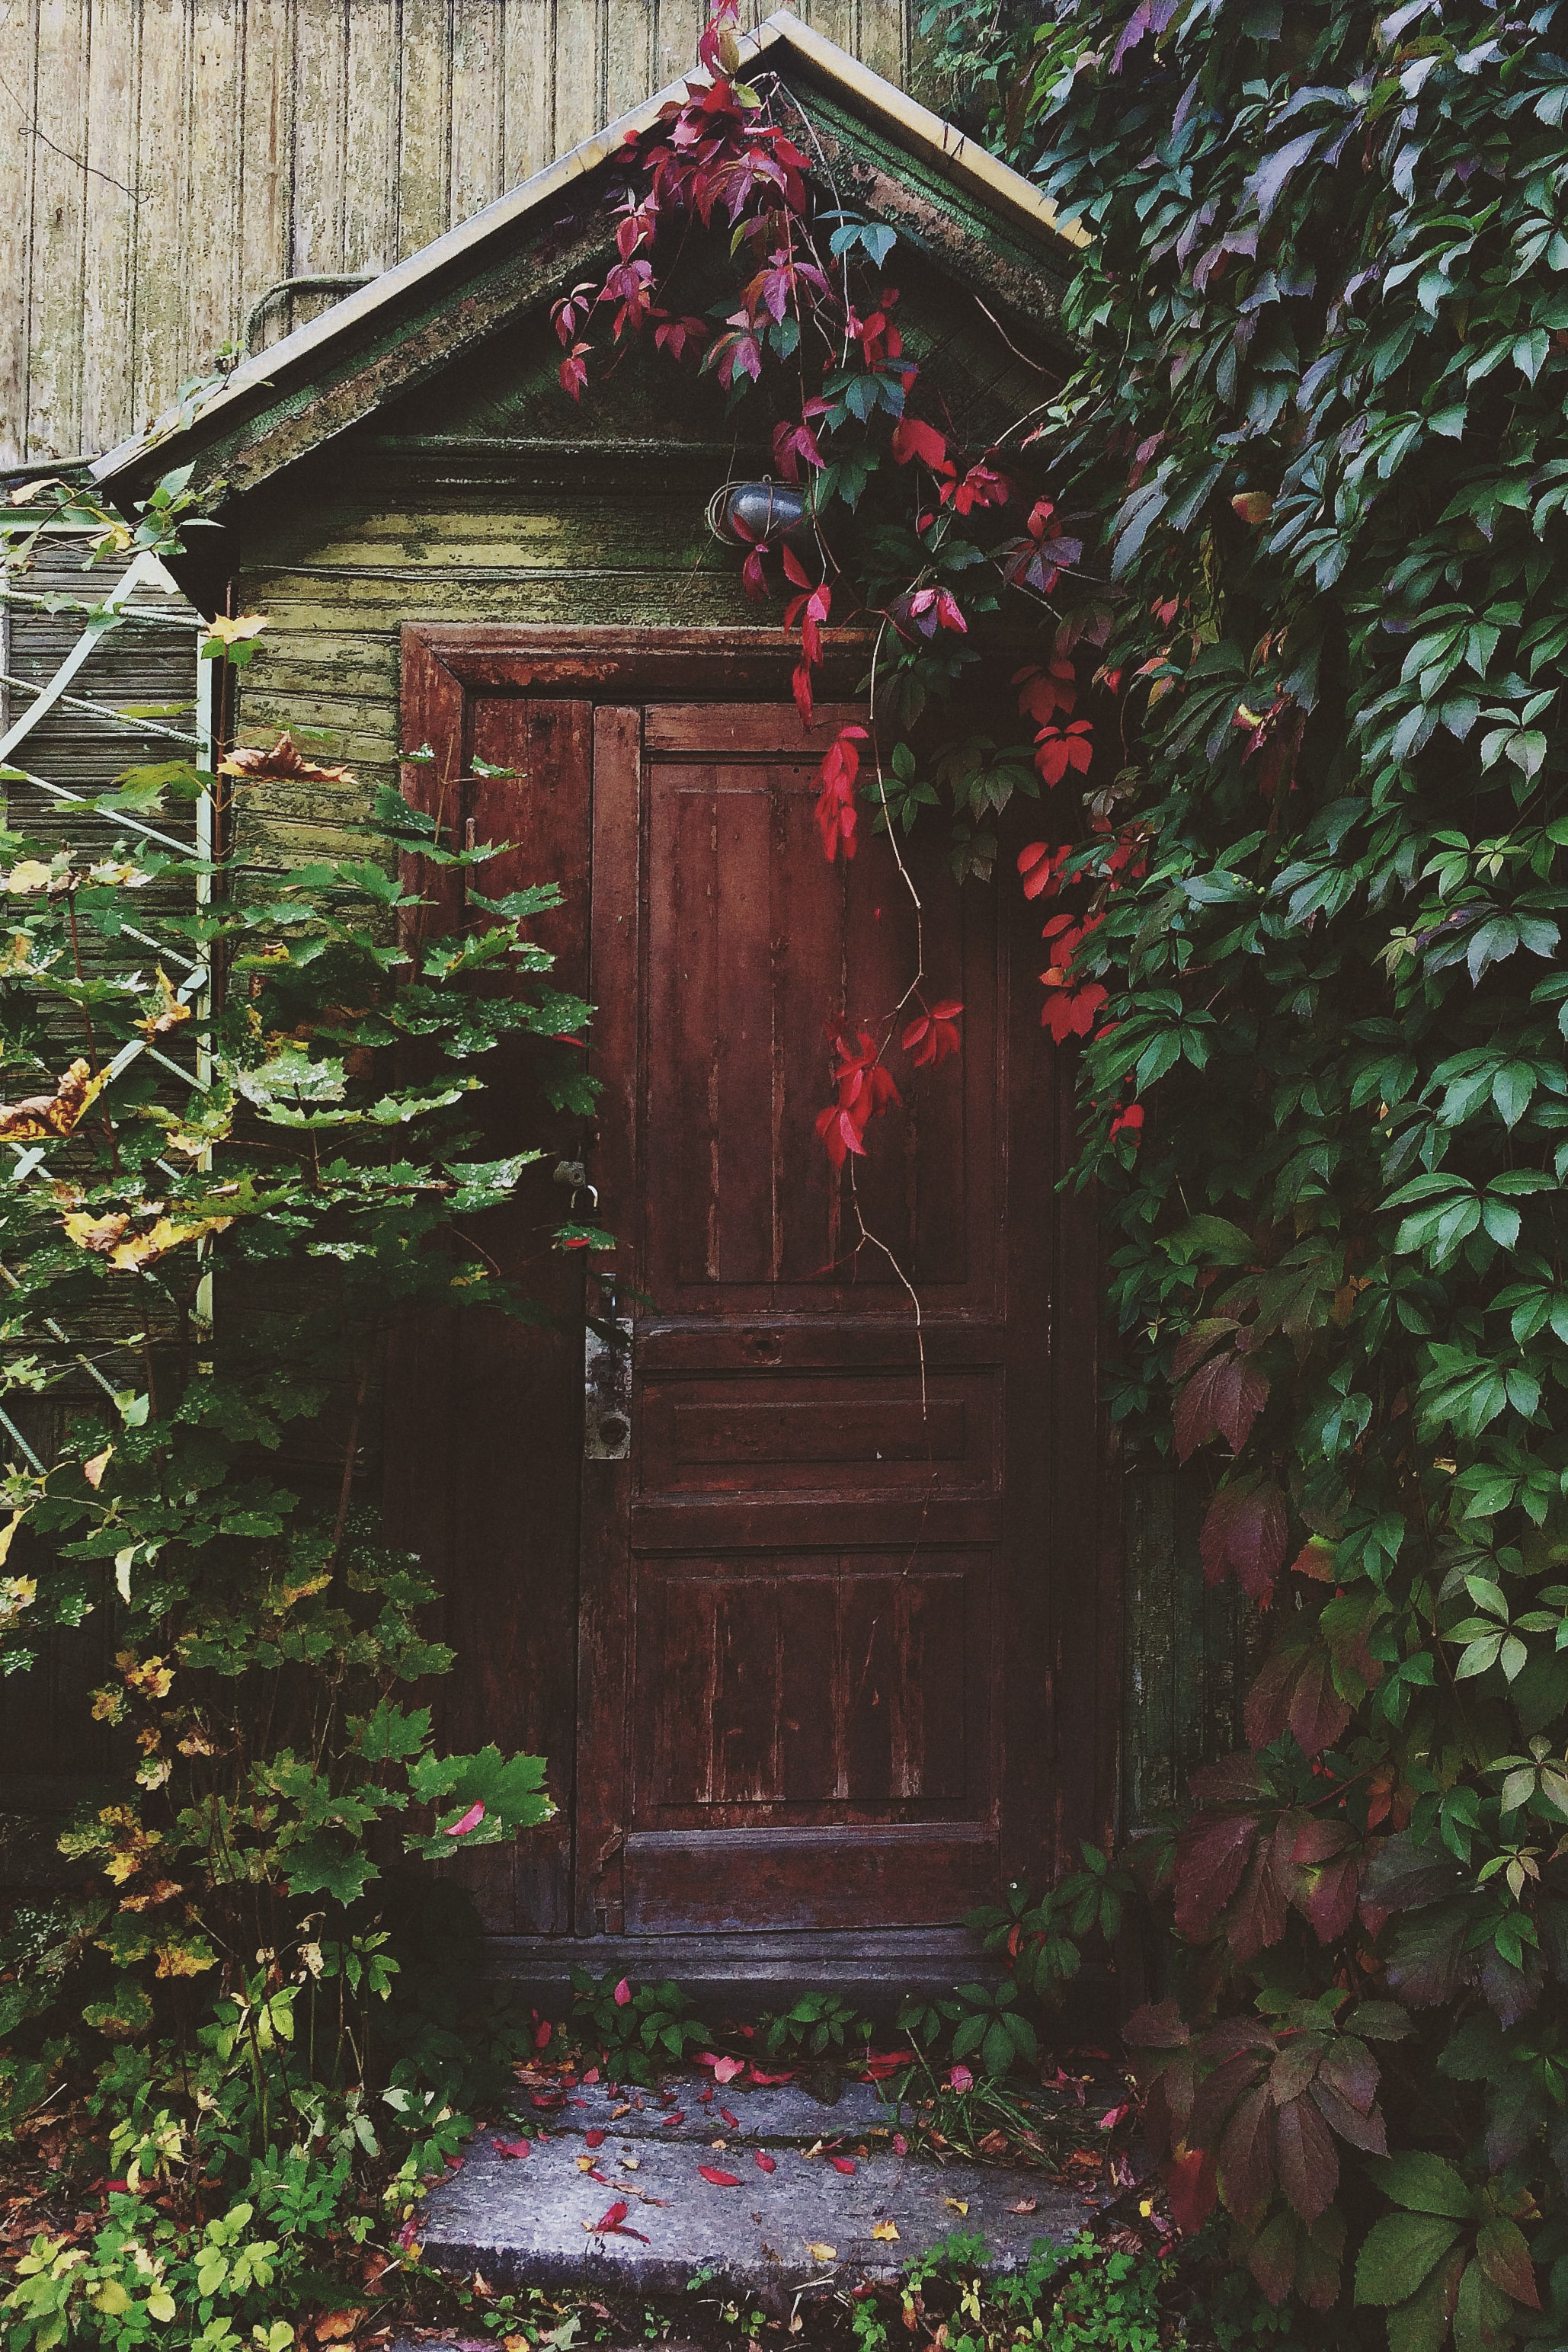 Rustic wooden door surrounded by red and green climbing ivy with stone steps and wooden wall in the background